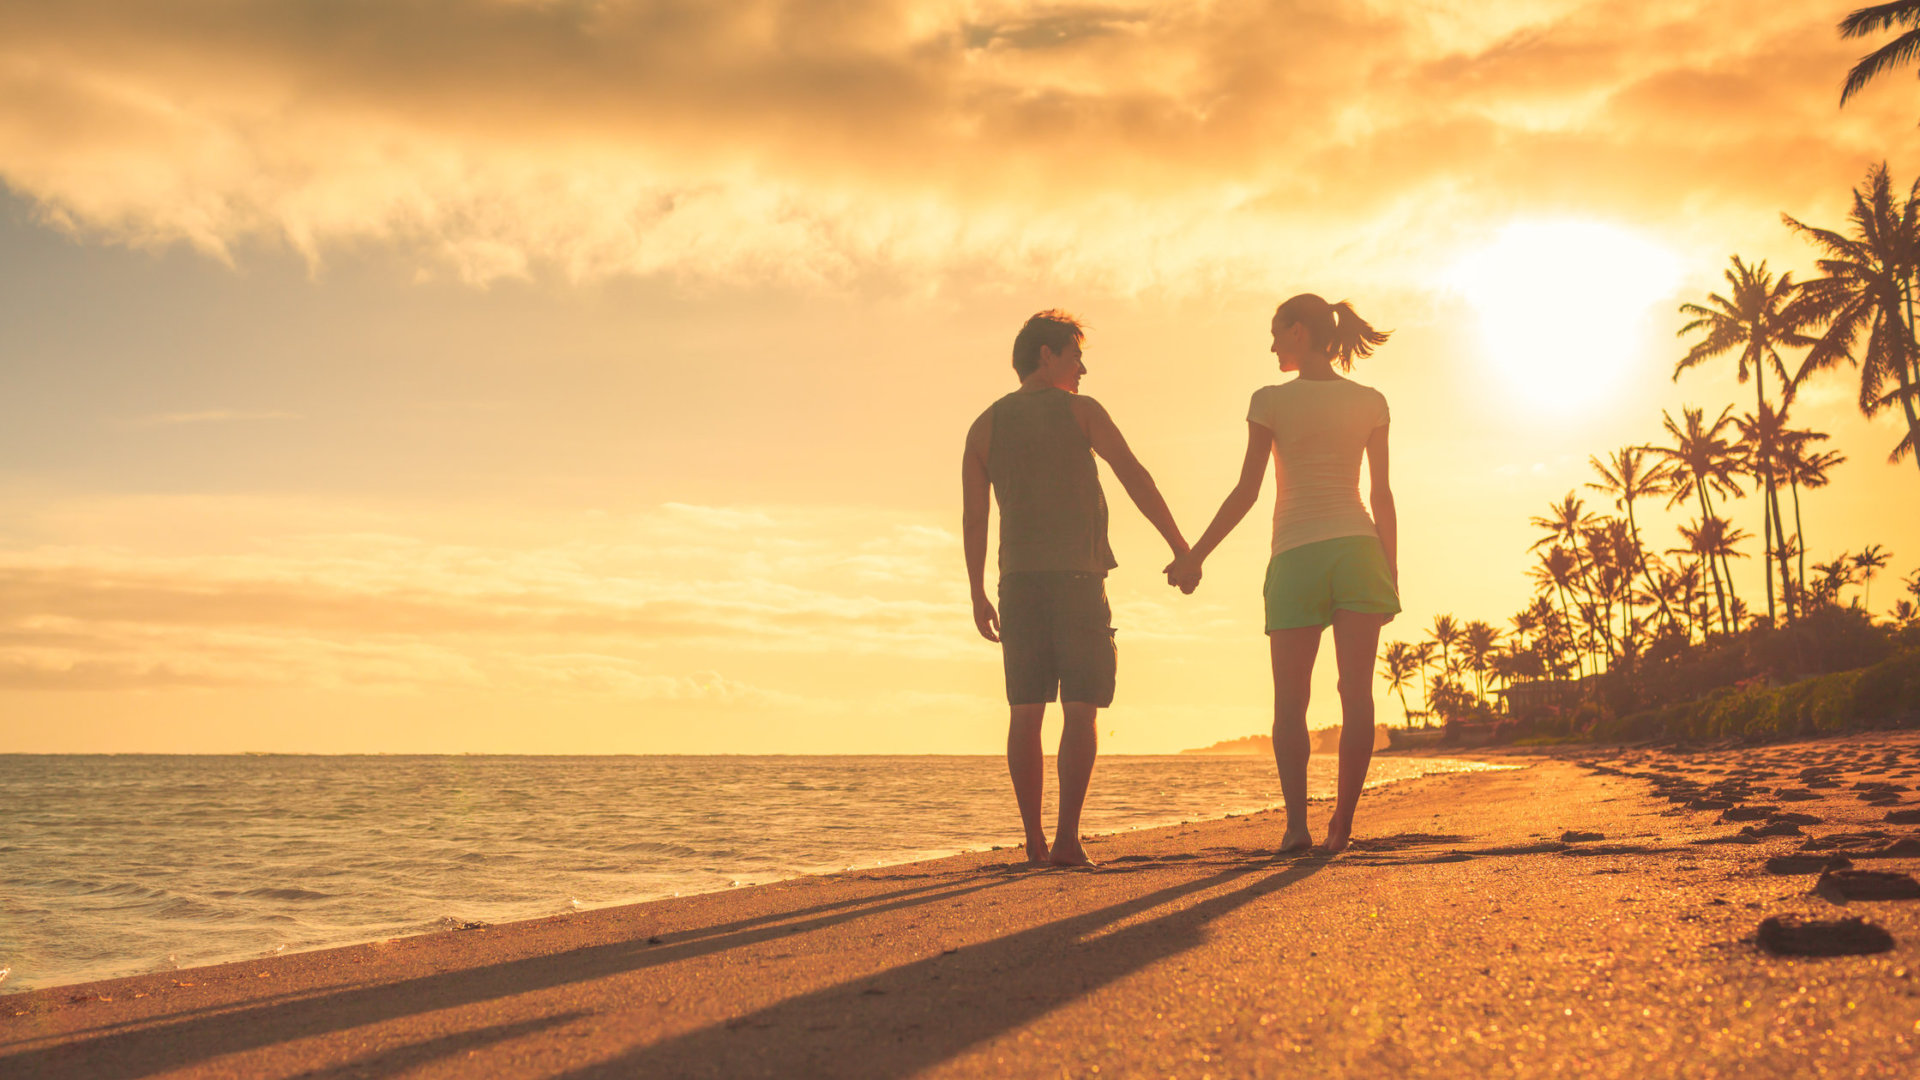 Romantic couple walking on the beach during sunset. Location Hawaii.